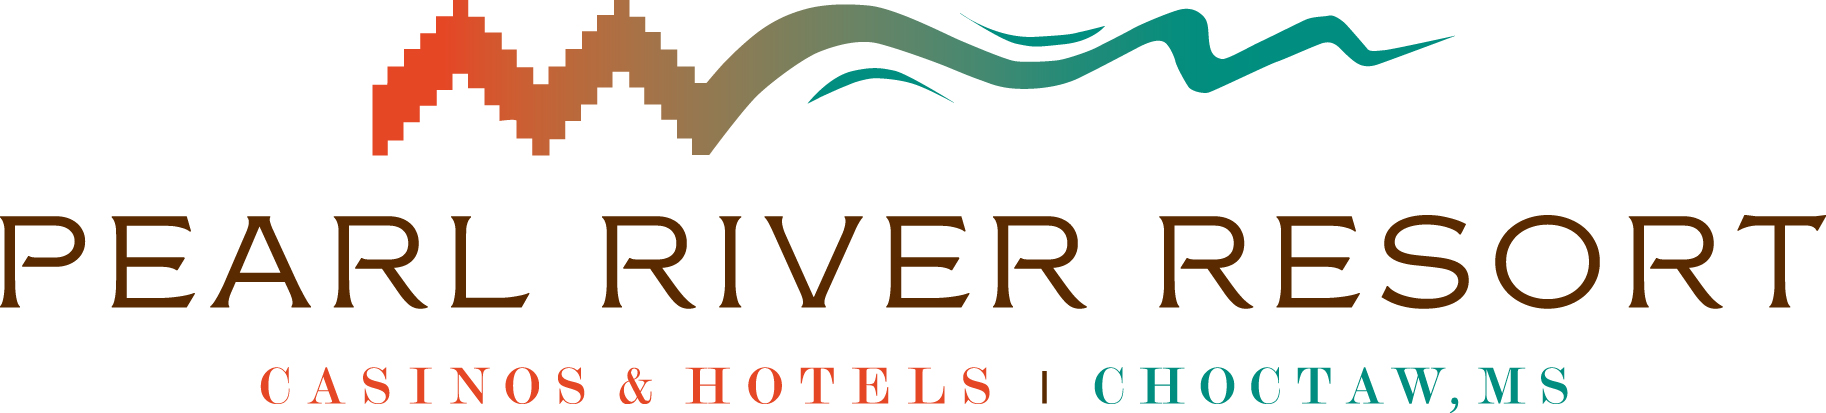 Star river resort clipart banner library Links - Casino Careers banner library